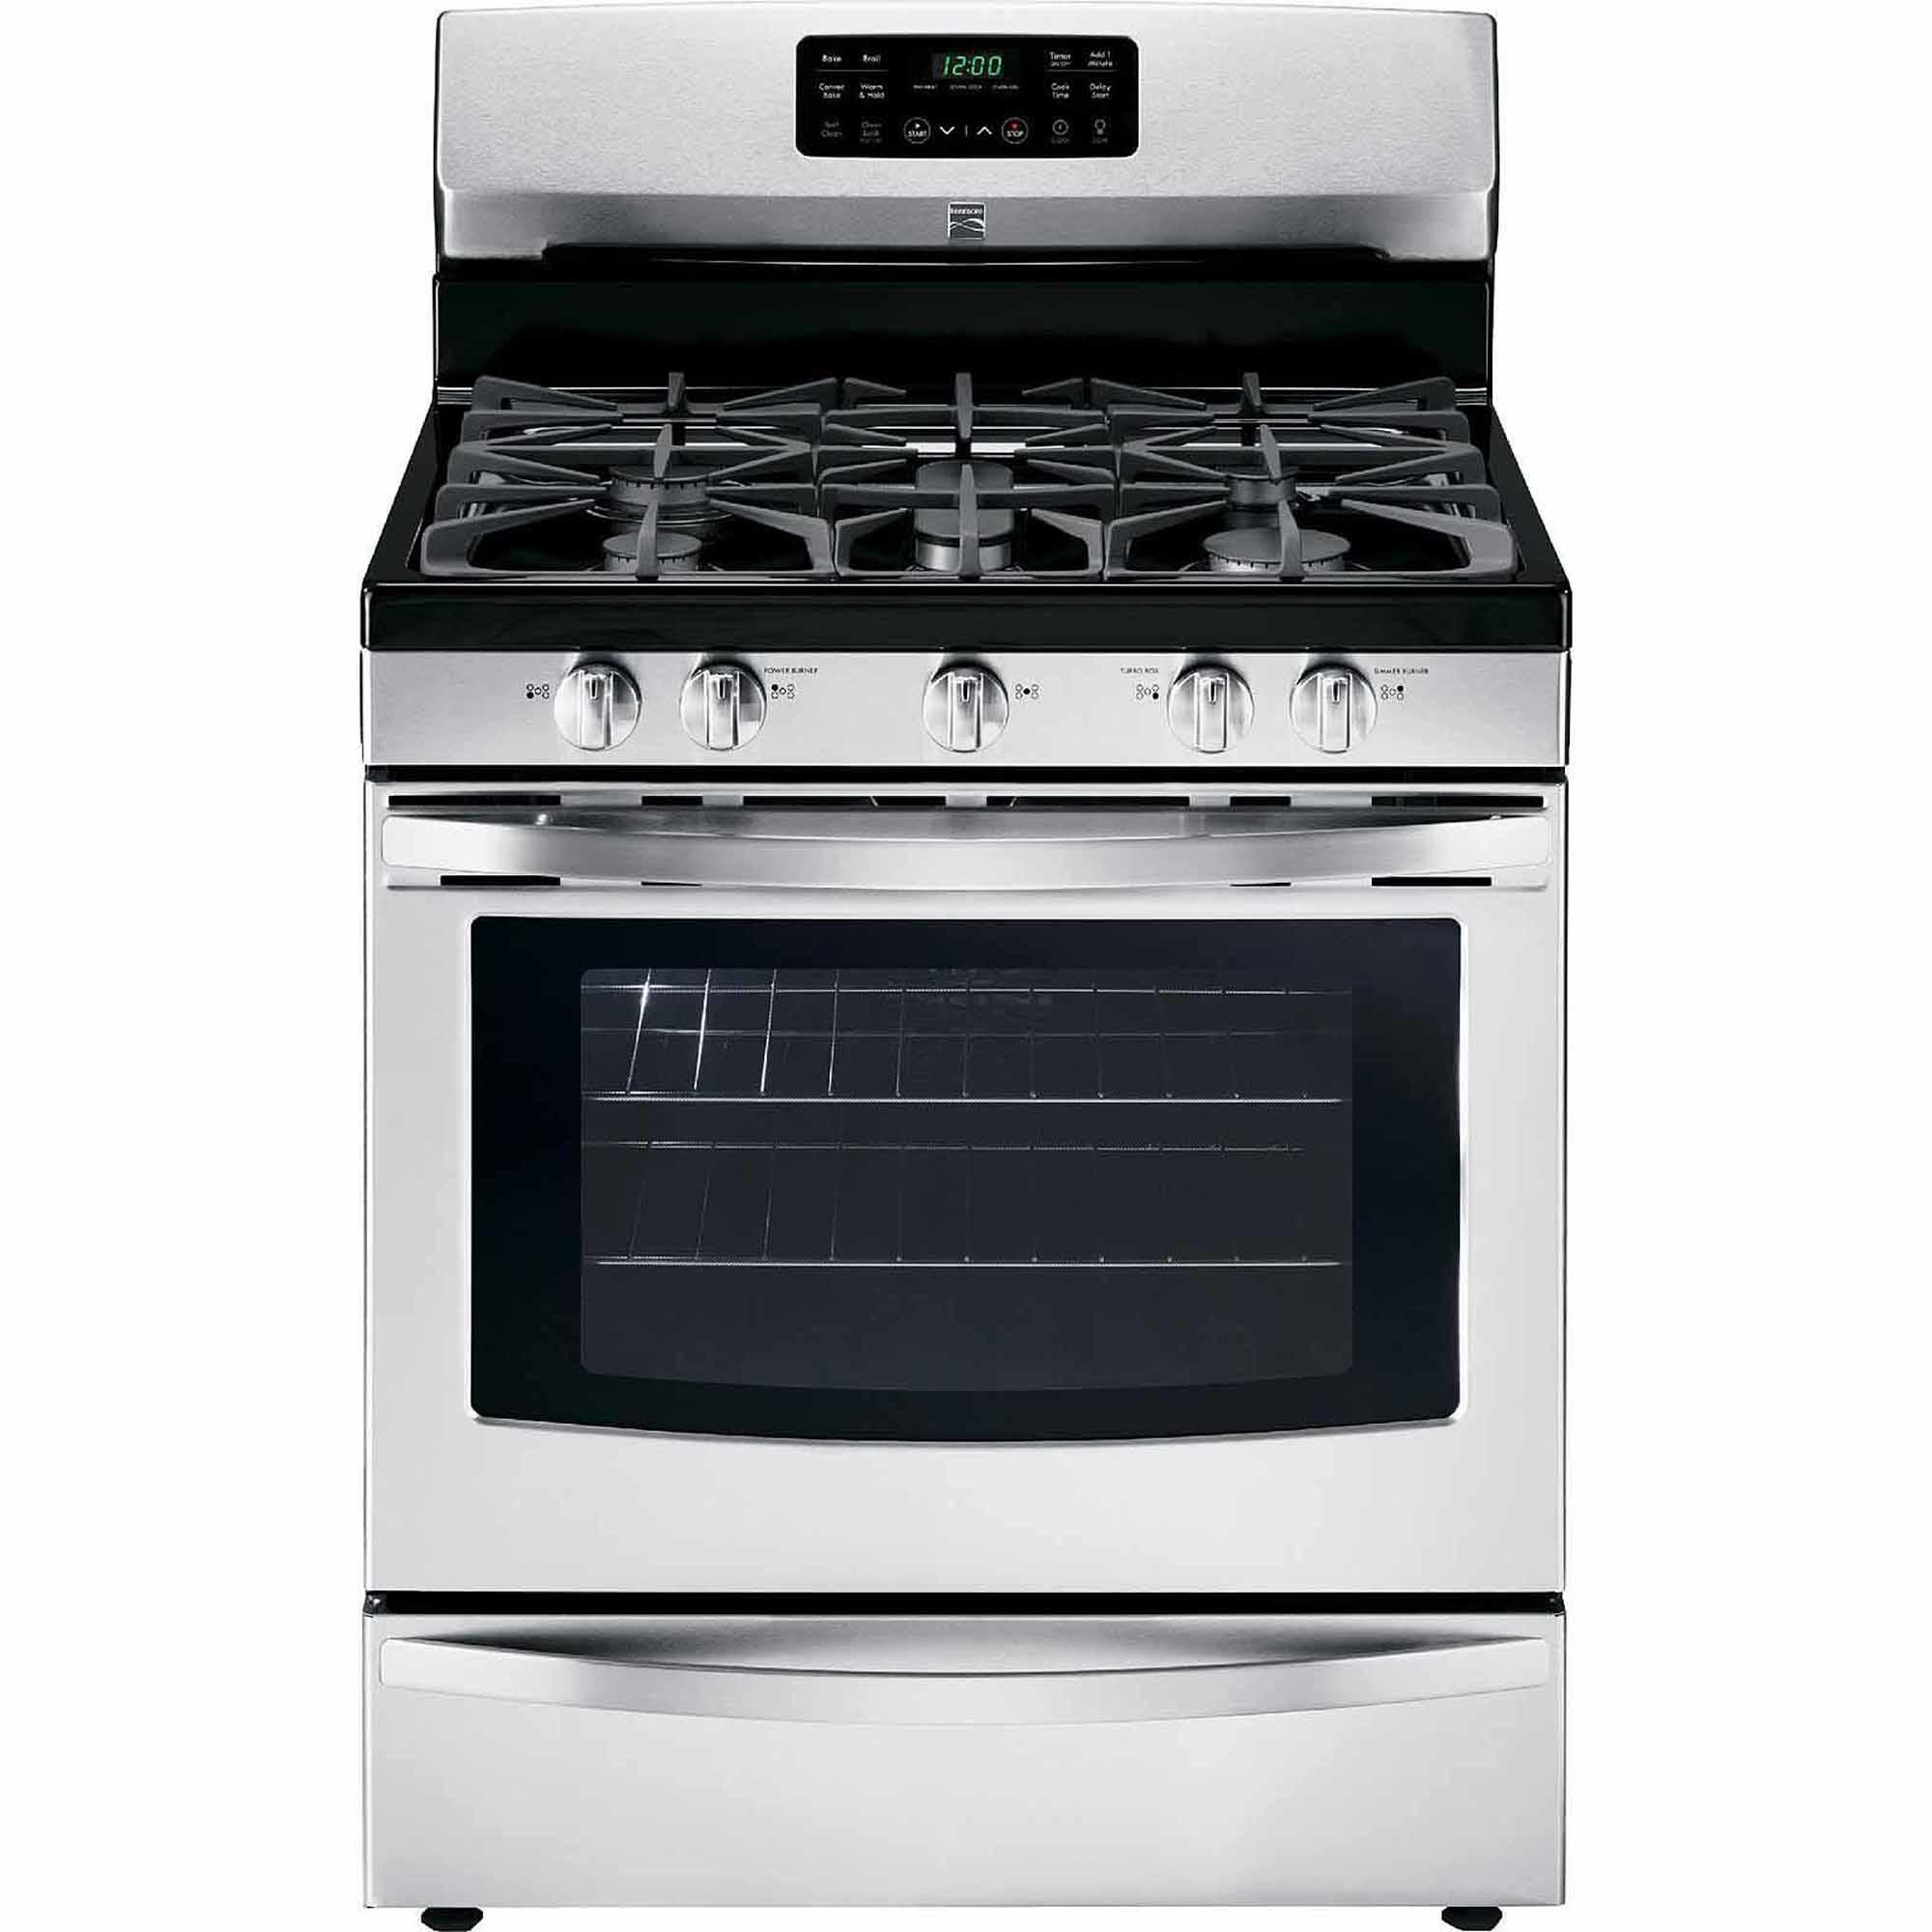 Kenmore 74233 5.0 cu. ft. Freestanding Gas Range w/ Convection - Stainless Steel